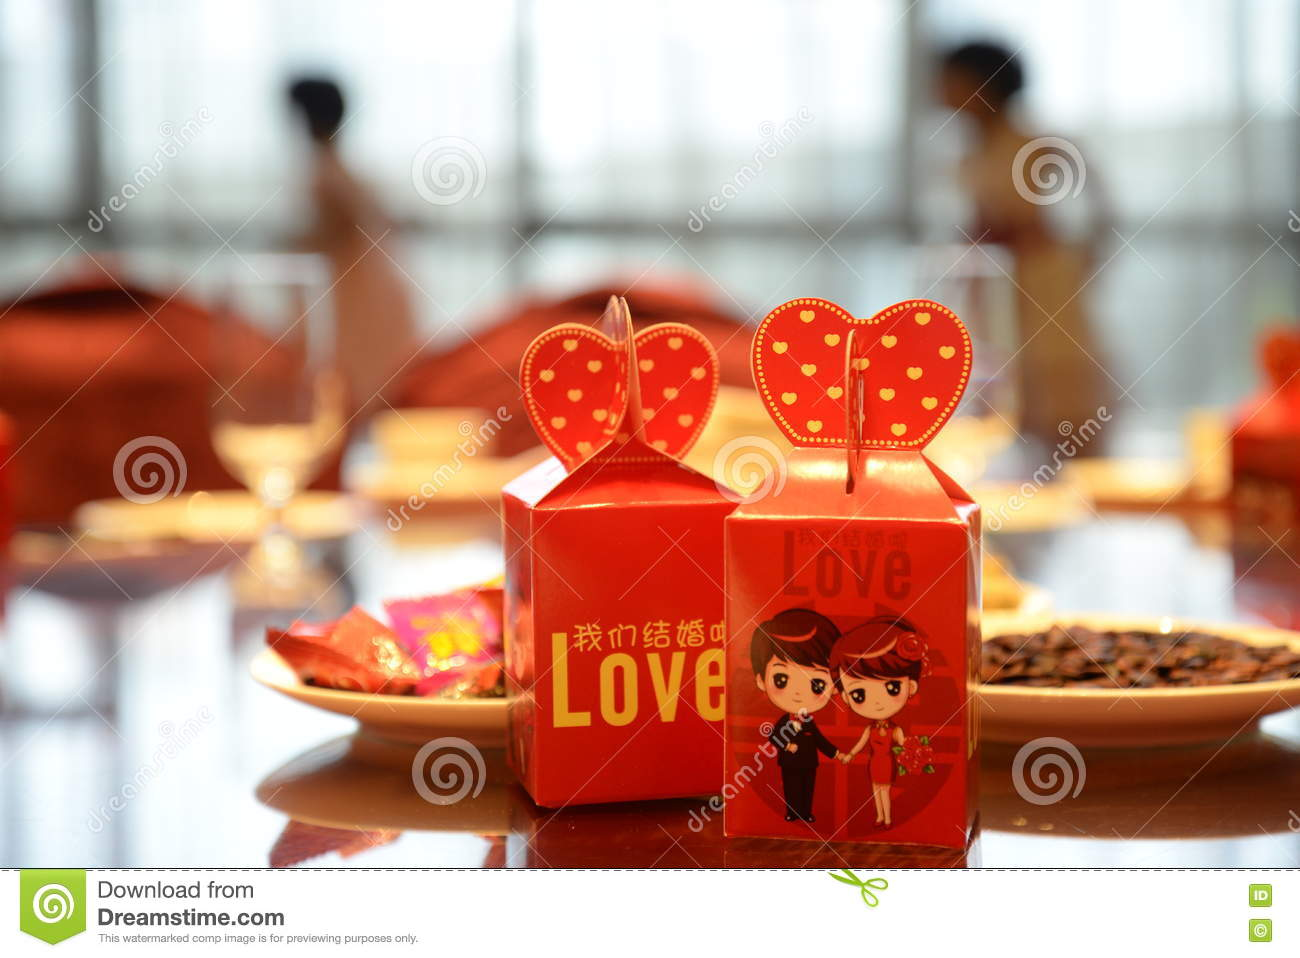 Traditional Chinese Wedding Gifts: Chinese Wedding Gift Box Editorial Stock Image. Image Of